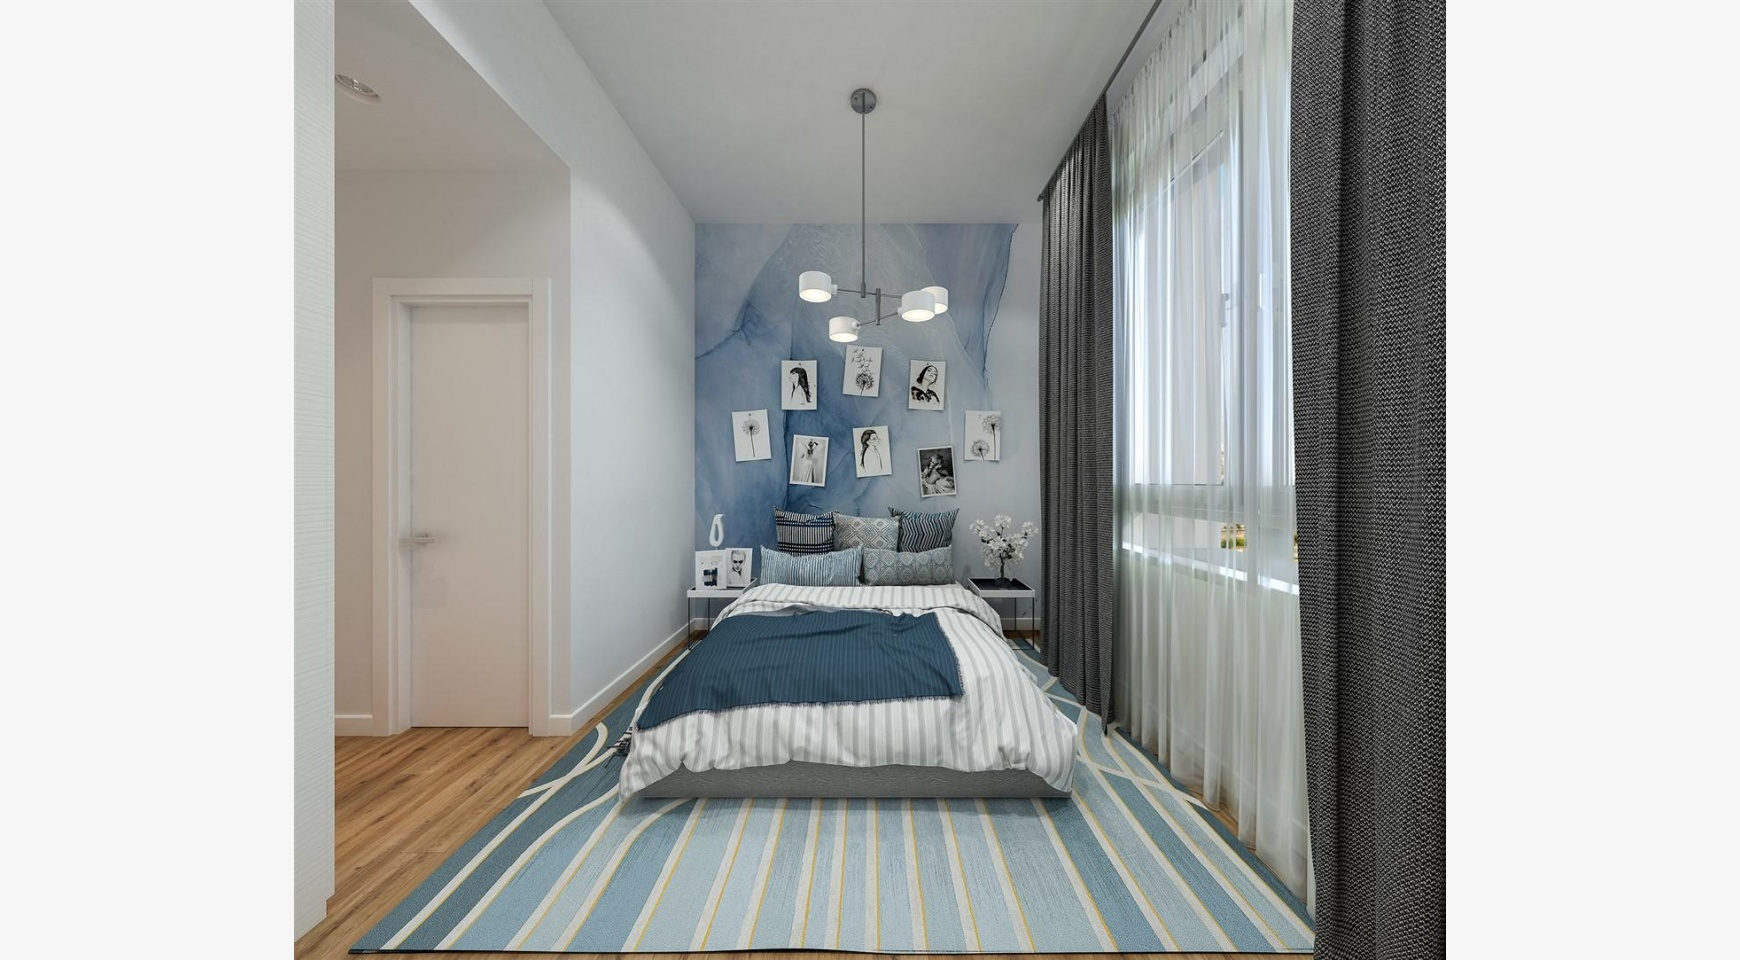 Urban City Residences, Block A. New Spacious 3 Bedroom Apartment 201 in the City Centre - 24